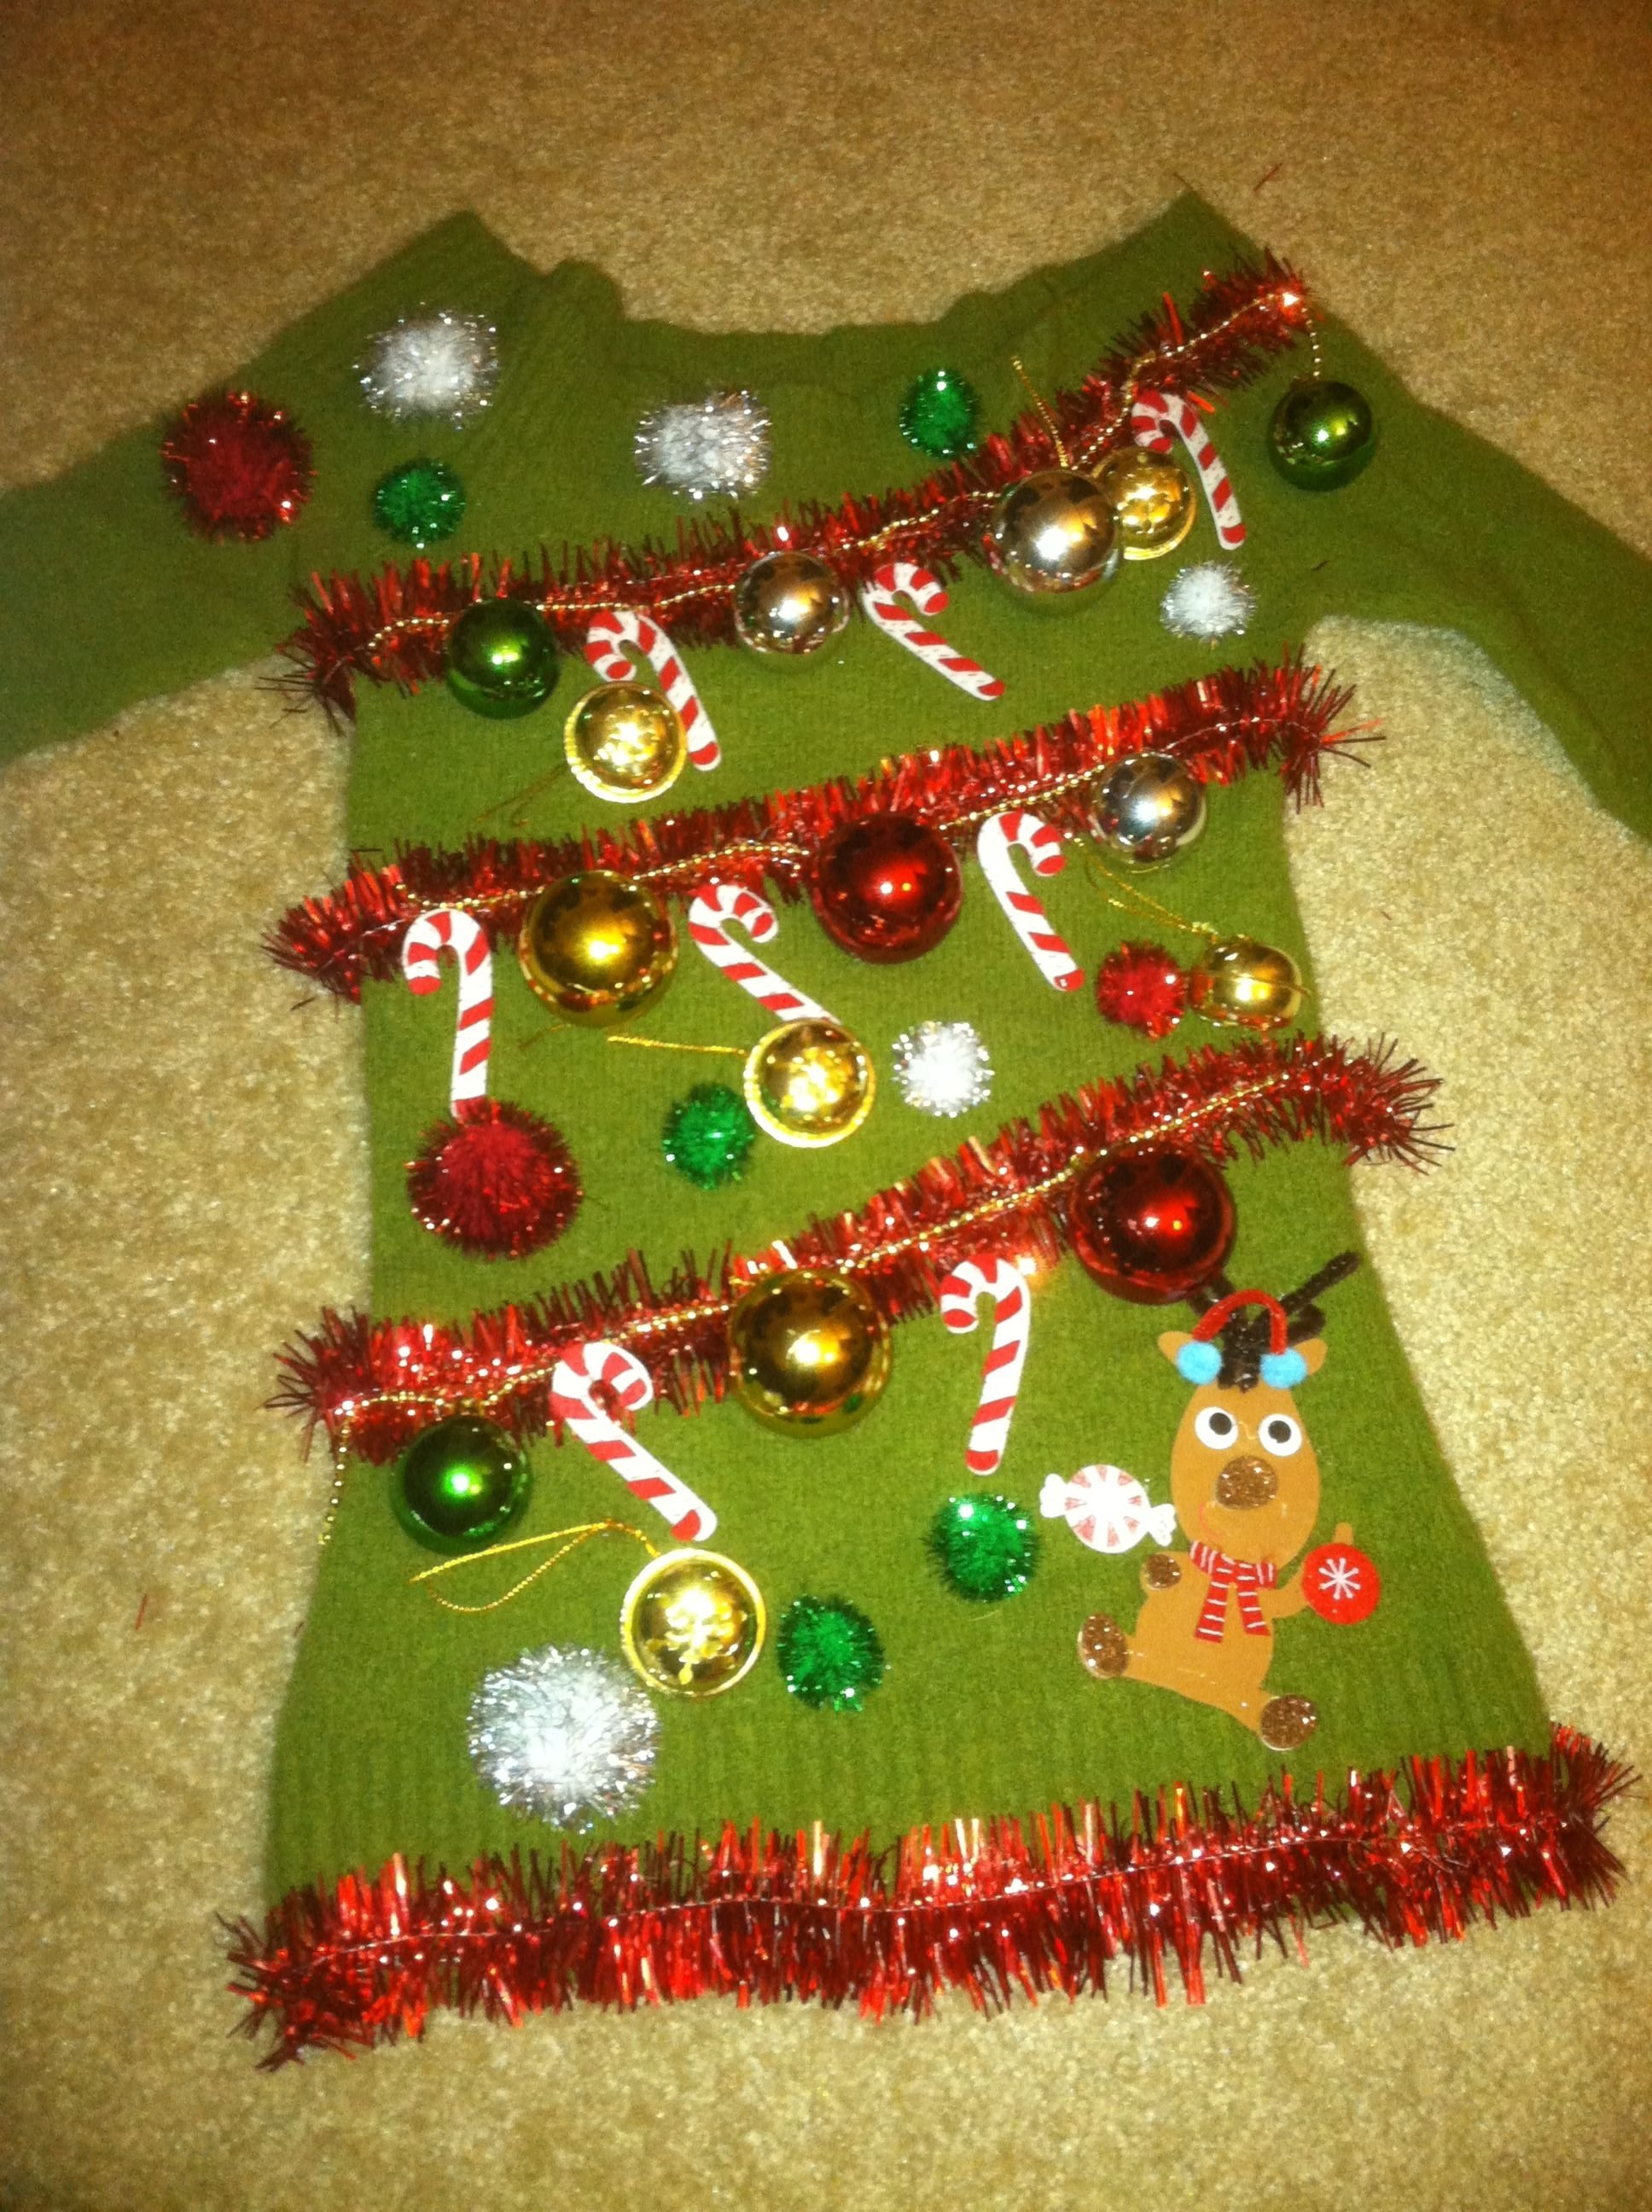 10 fantastic do it yourself ugly christmas sweater ideas 10 fantastic do it yourself ugly christmas sweater ideas stylish christmas costume ideas for your holiday solutioingenieria Choice Image